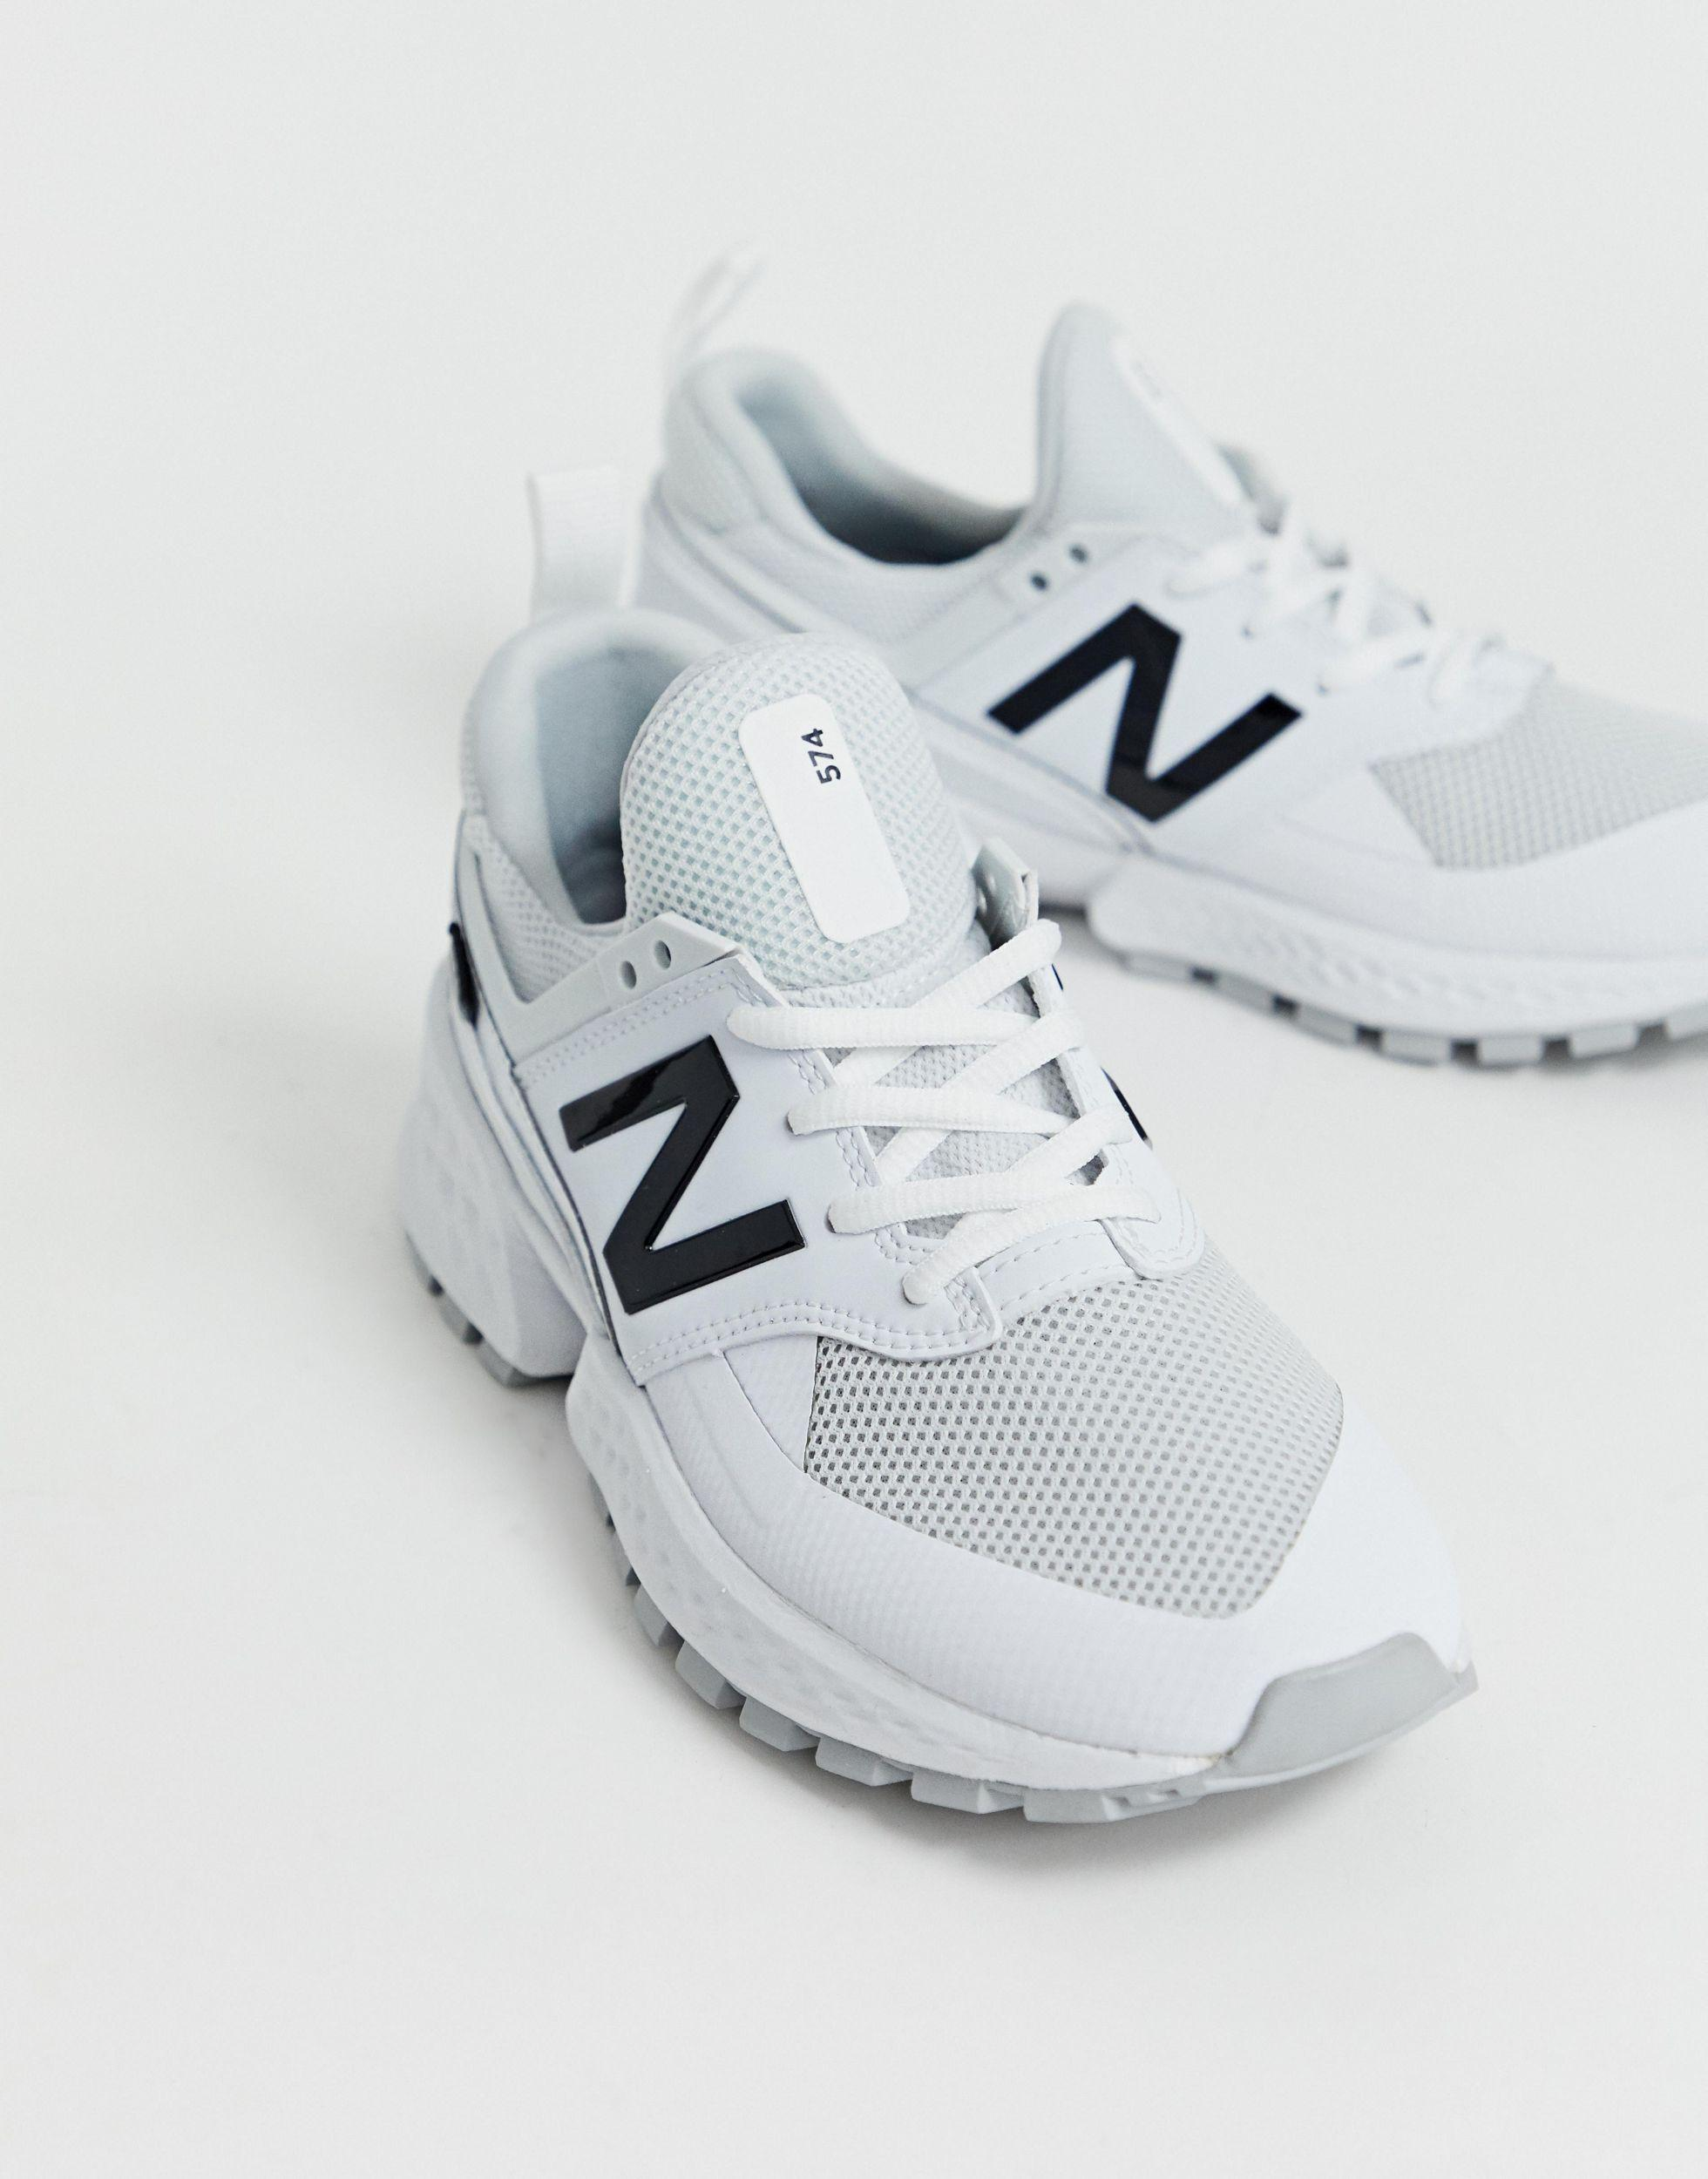 New Balance Leather 574 Sport V2 Triple Sneakers in White - Lyst